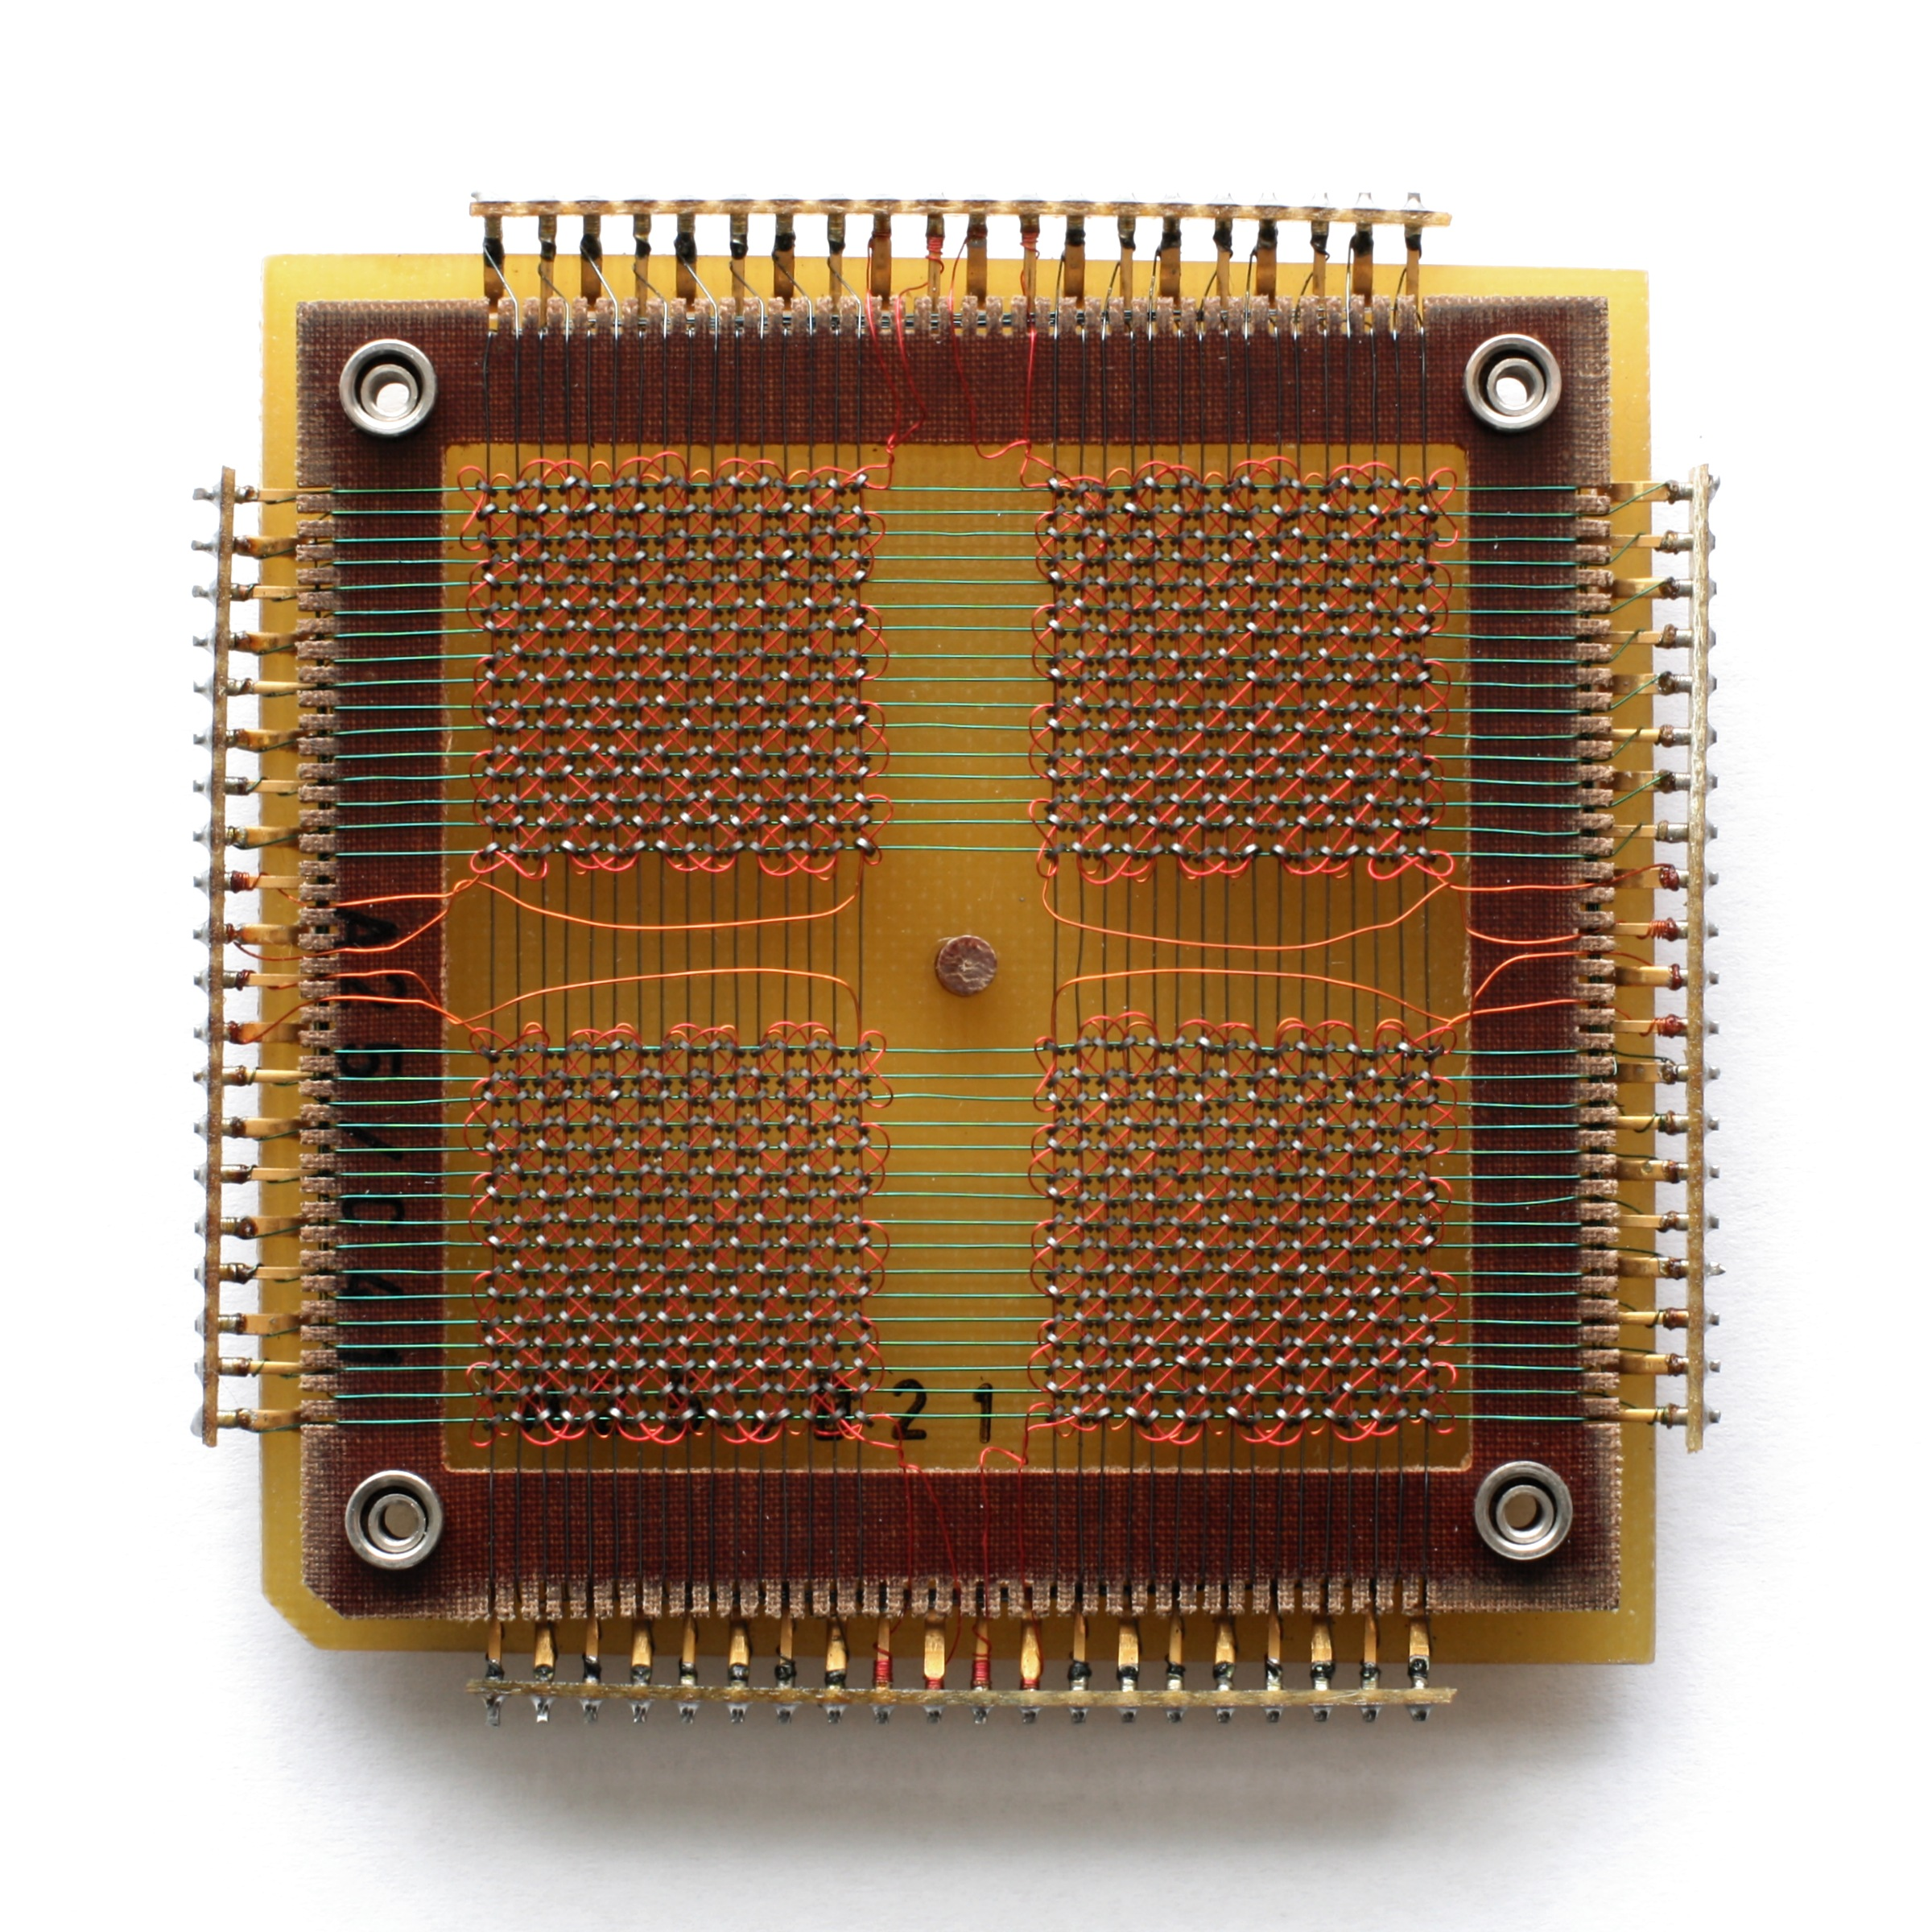 Magnetic Ferrite Core Memory - Tech History Today